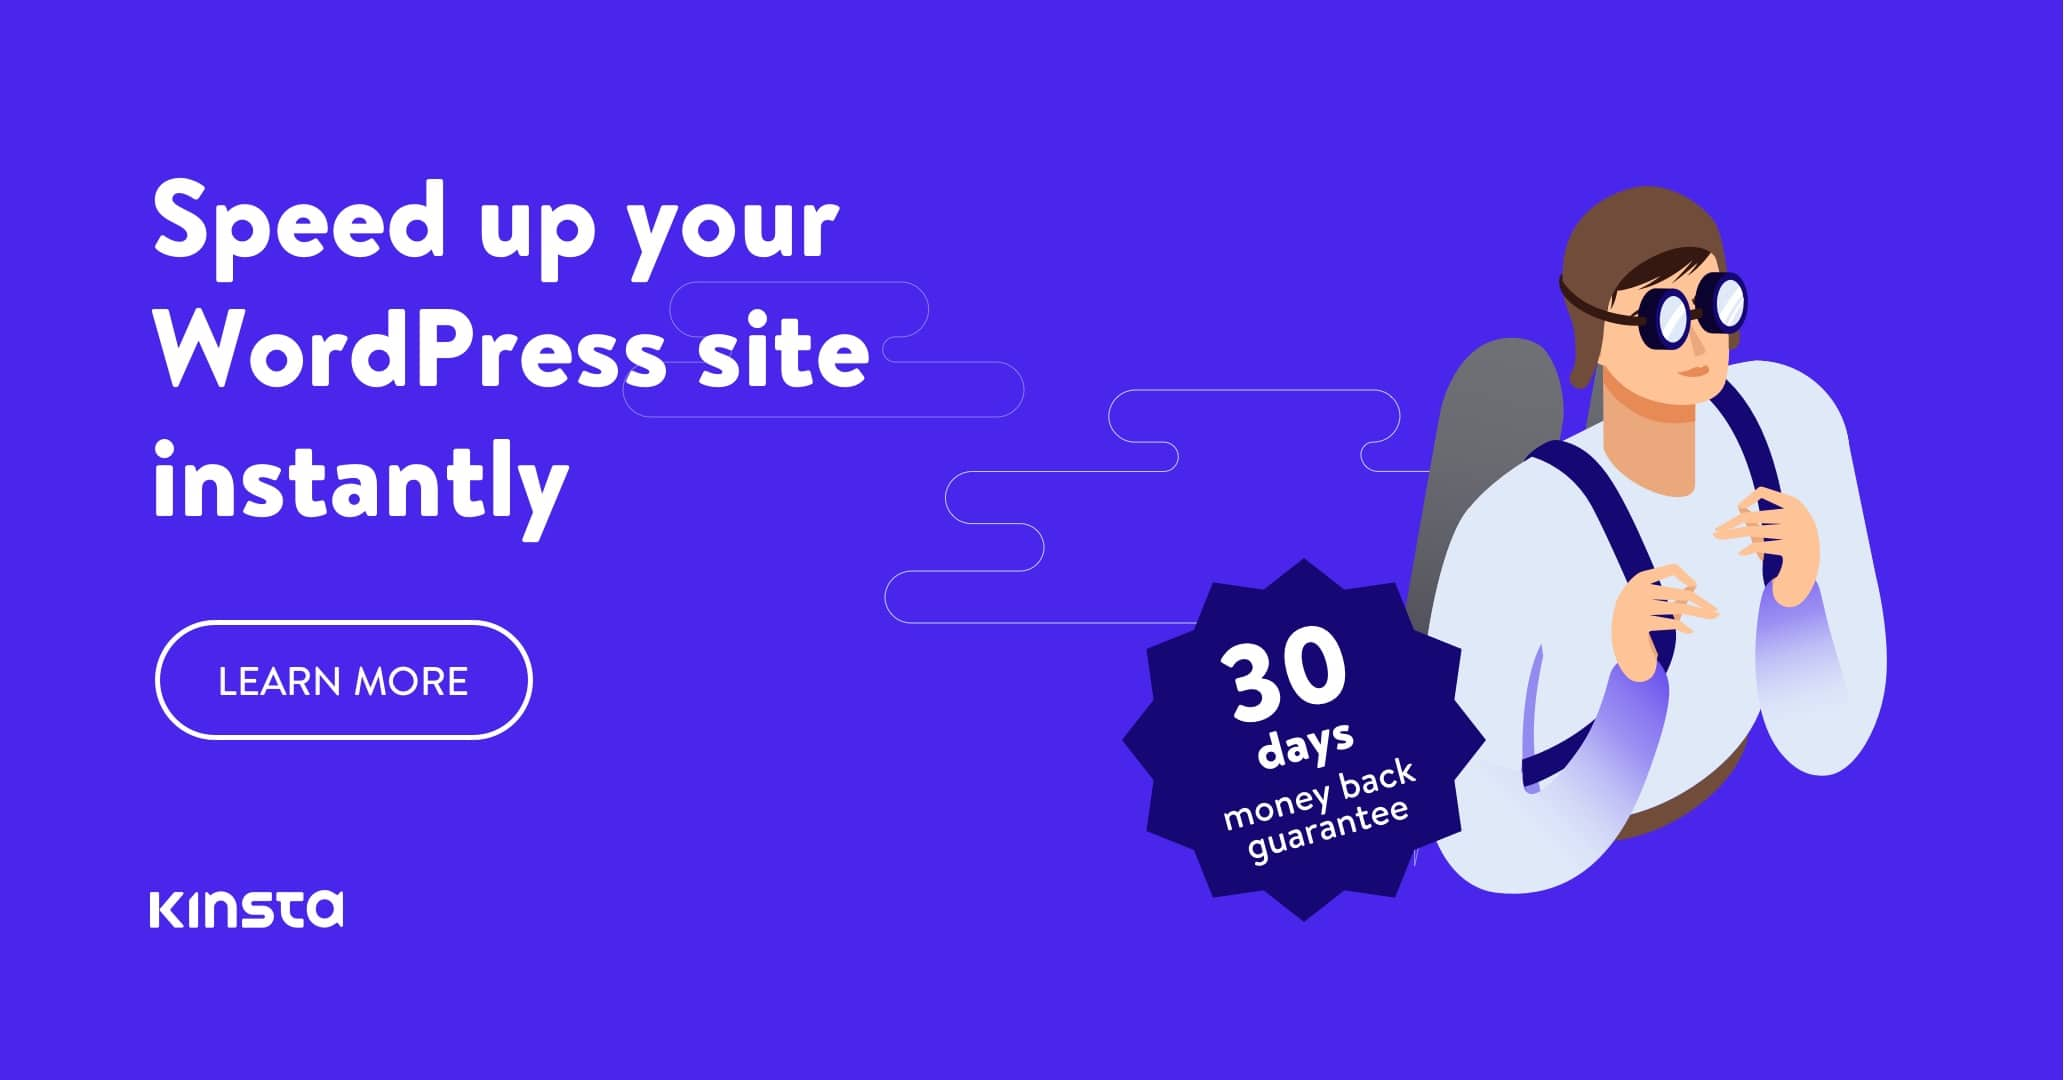 Speed up your WordPress site instantly with the fastest WordPress hosting solutions from Kinsta. Try today with a 30 day money back guarantee